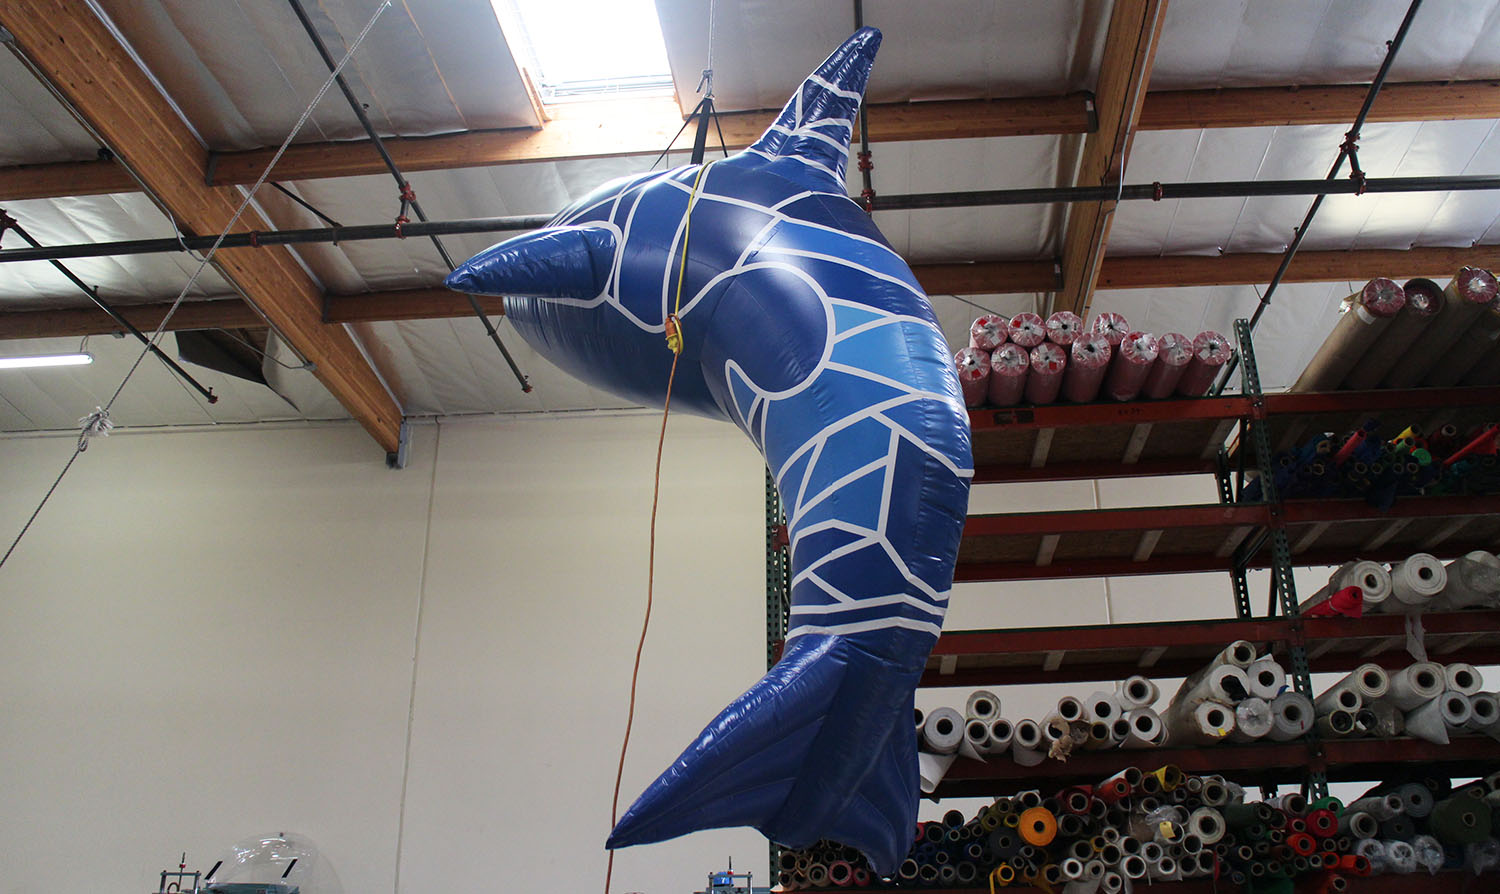 abstract-whale-inflatable